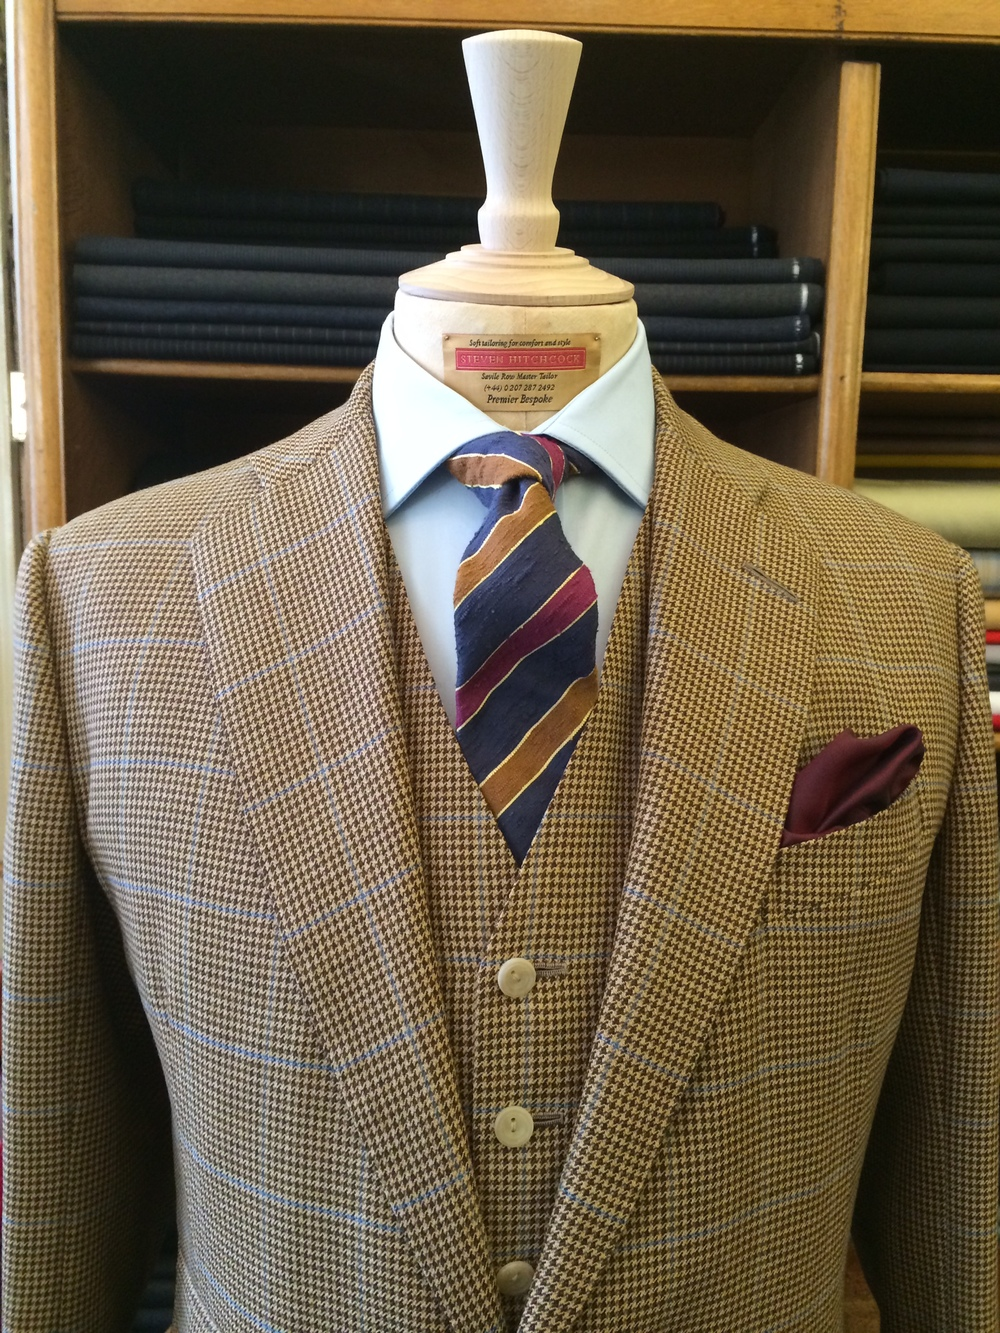 Steven Hitchcock window pane check bespoke jacket with the Leonard tie. Styling: Celia Williams